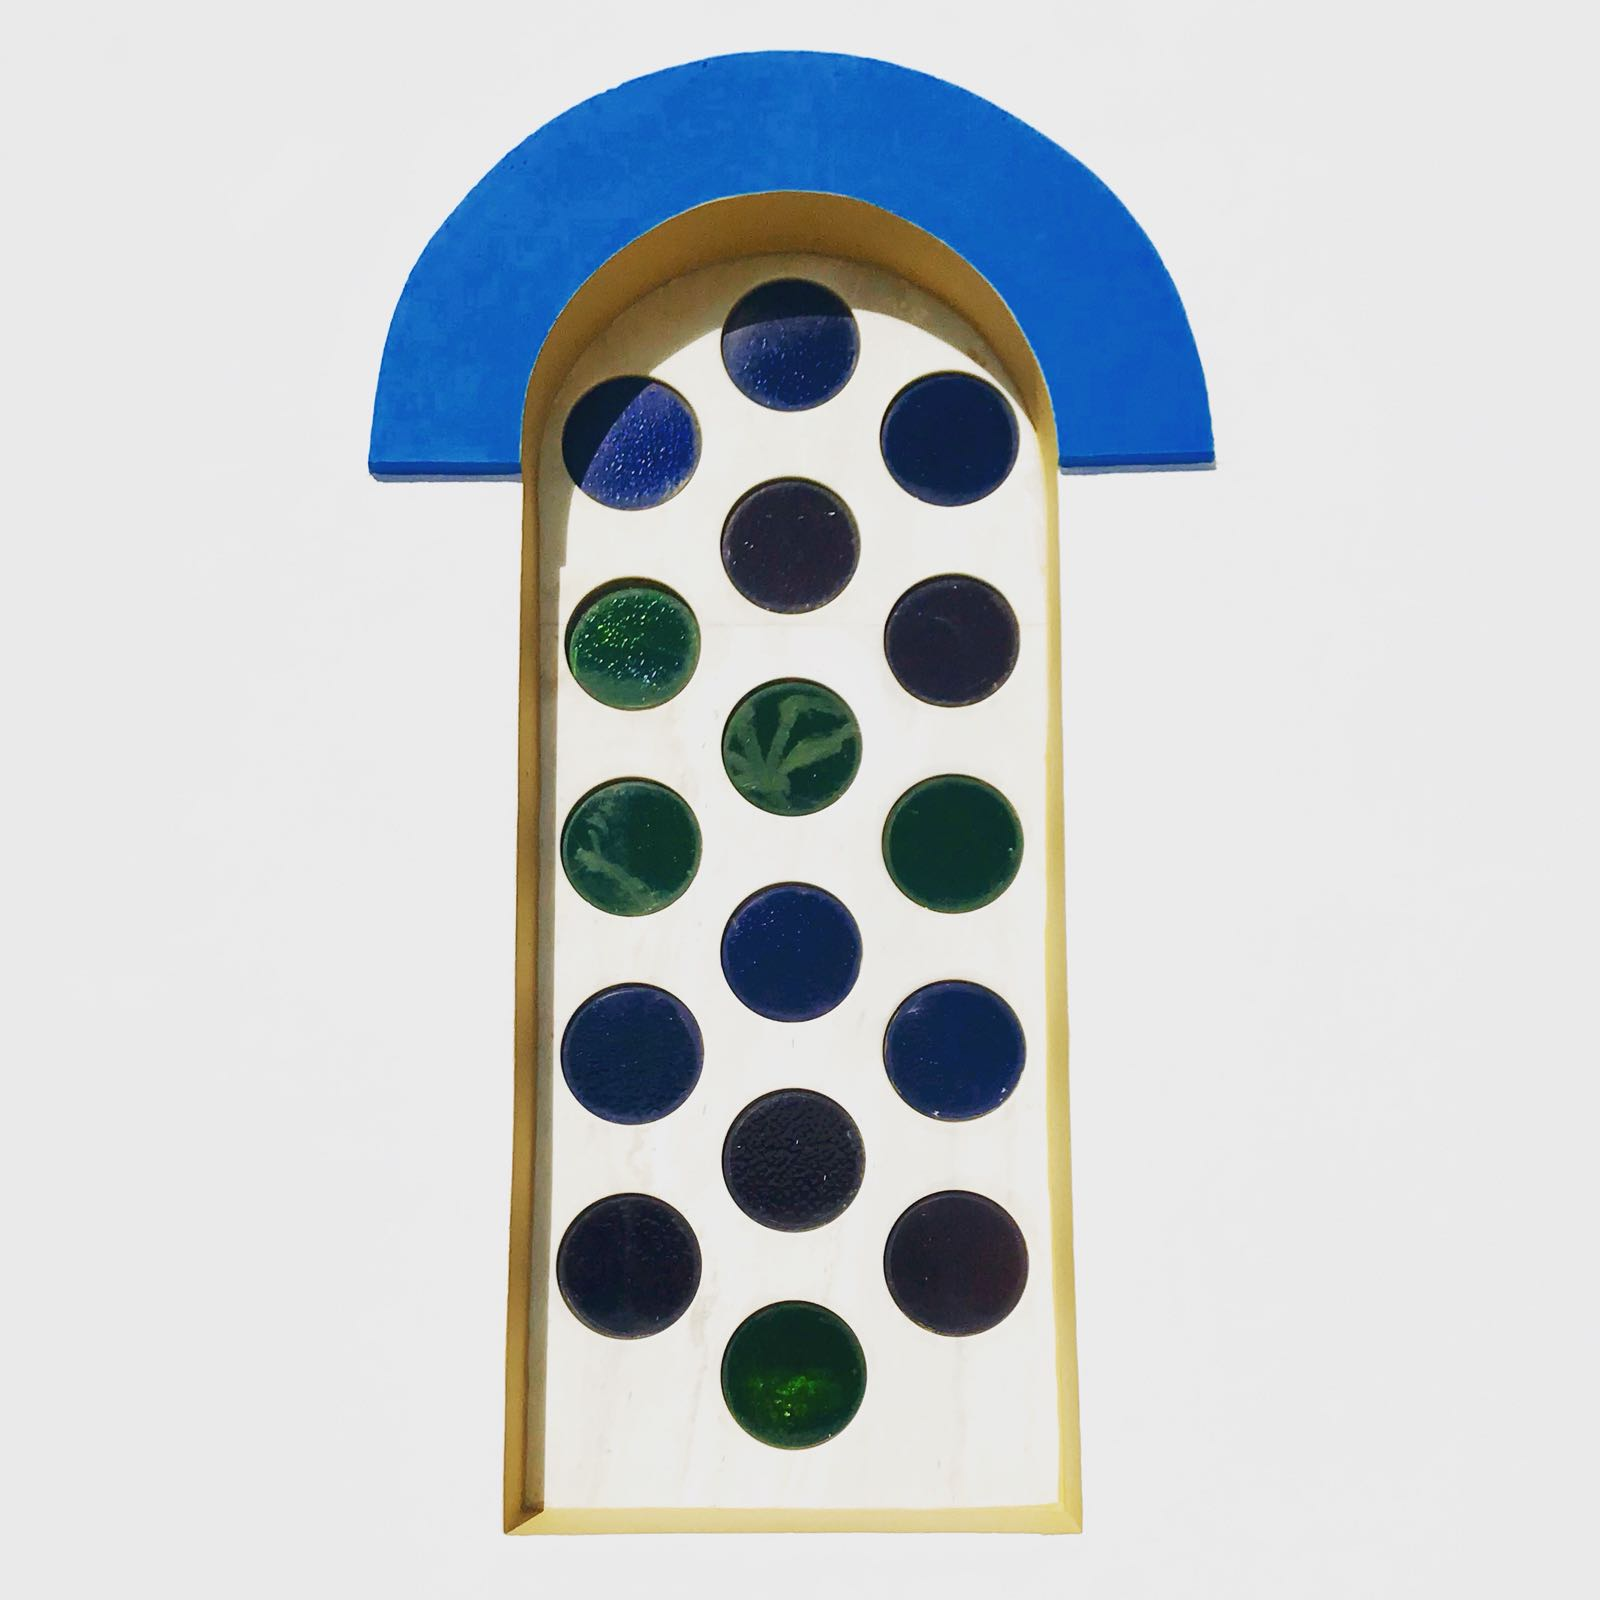 Window with blue arch frame surrounding an opaque pane inset with transparent circles